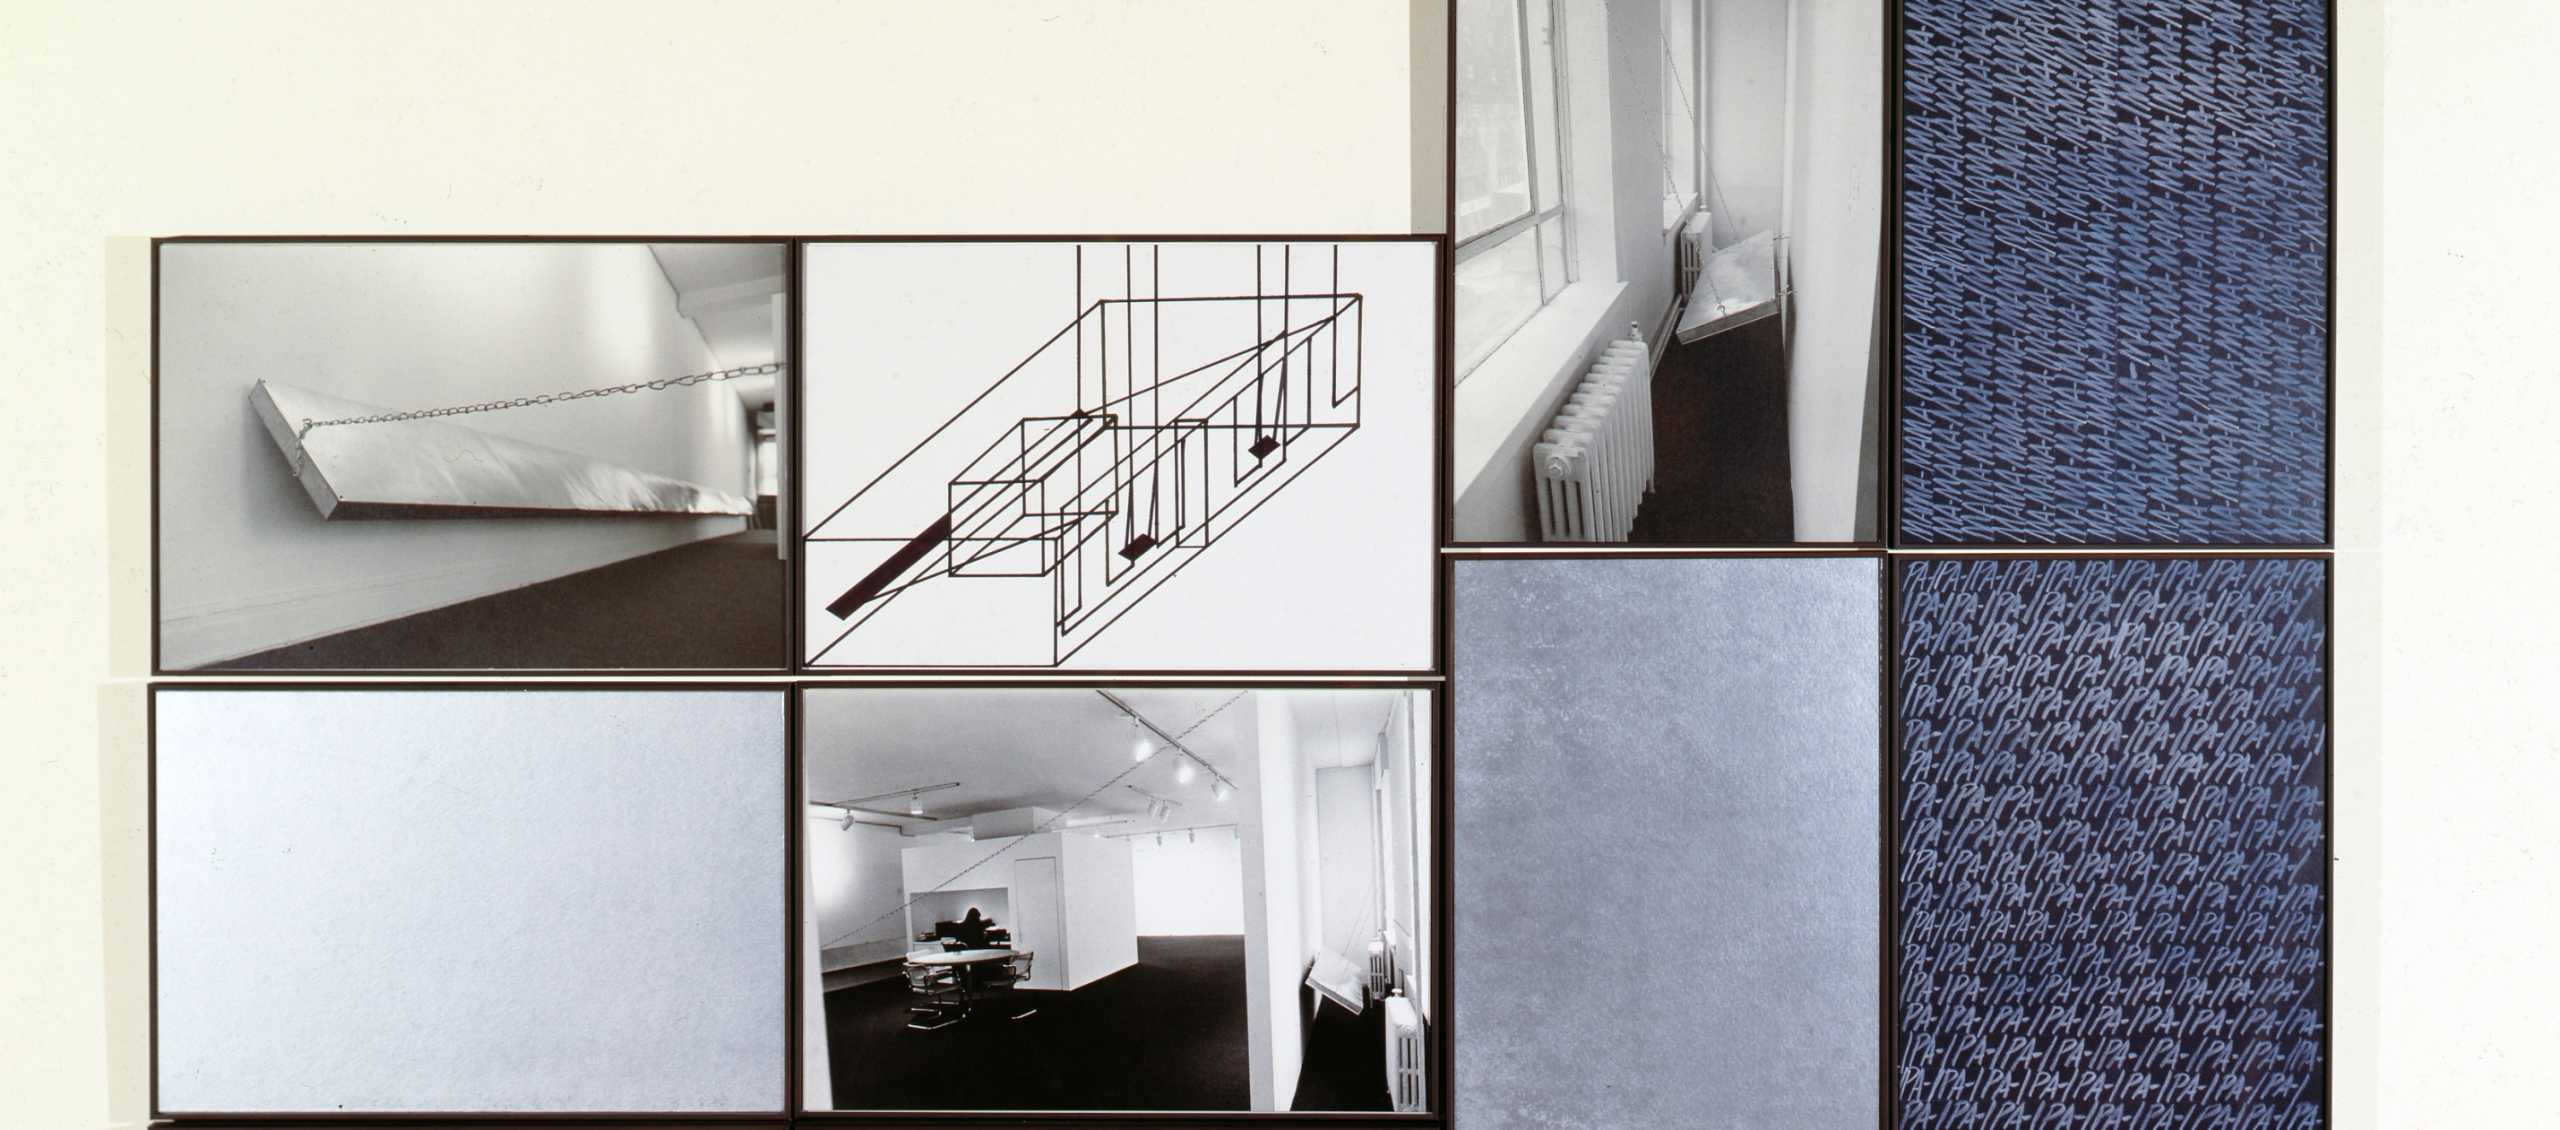 Vito Acconci, An Idea for Storage at a Small Gallery in Downtown Chicago, 1979